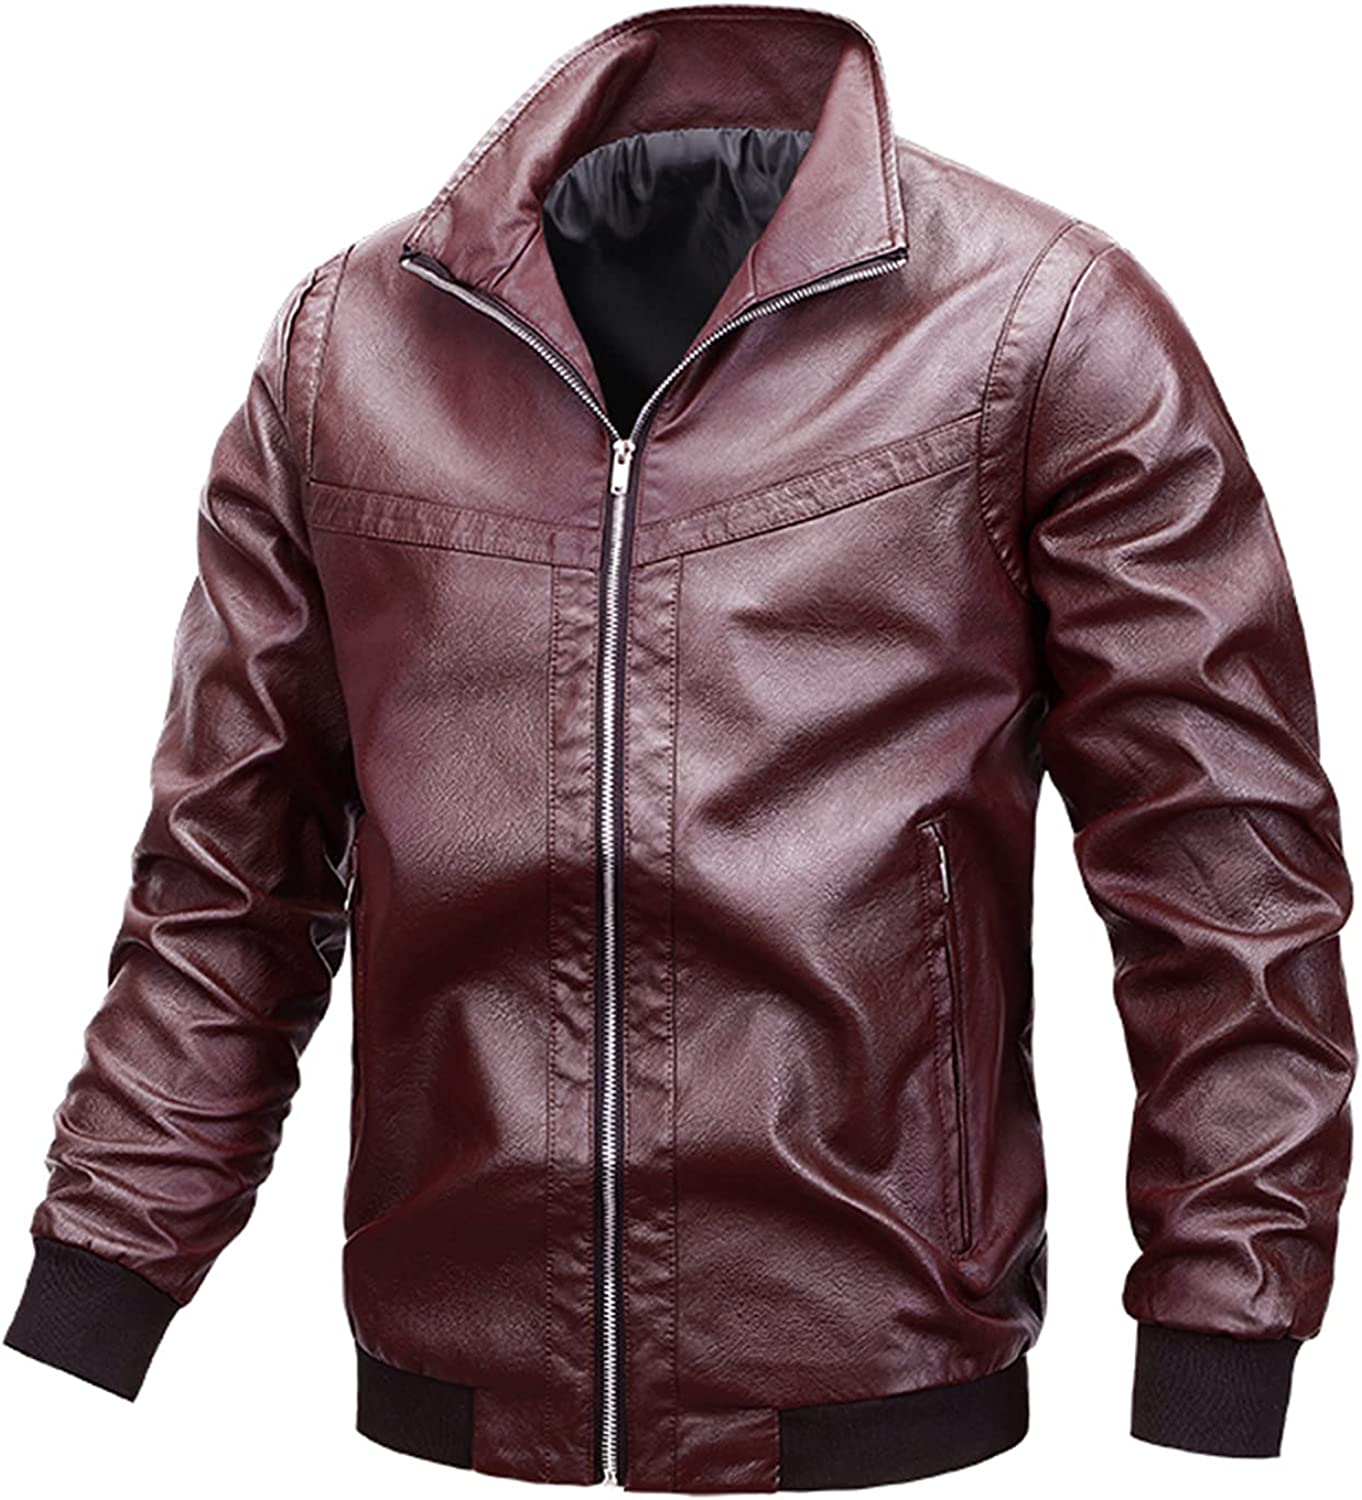 Jacket for Men's Leather Coat Fashion Fall Winter Lapel Zipper Plus Size Faux Leather Motorcycle Bomber Outwear